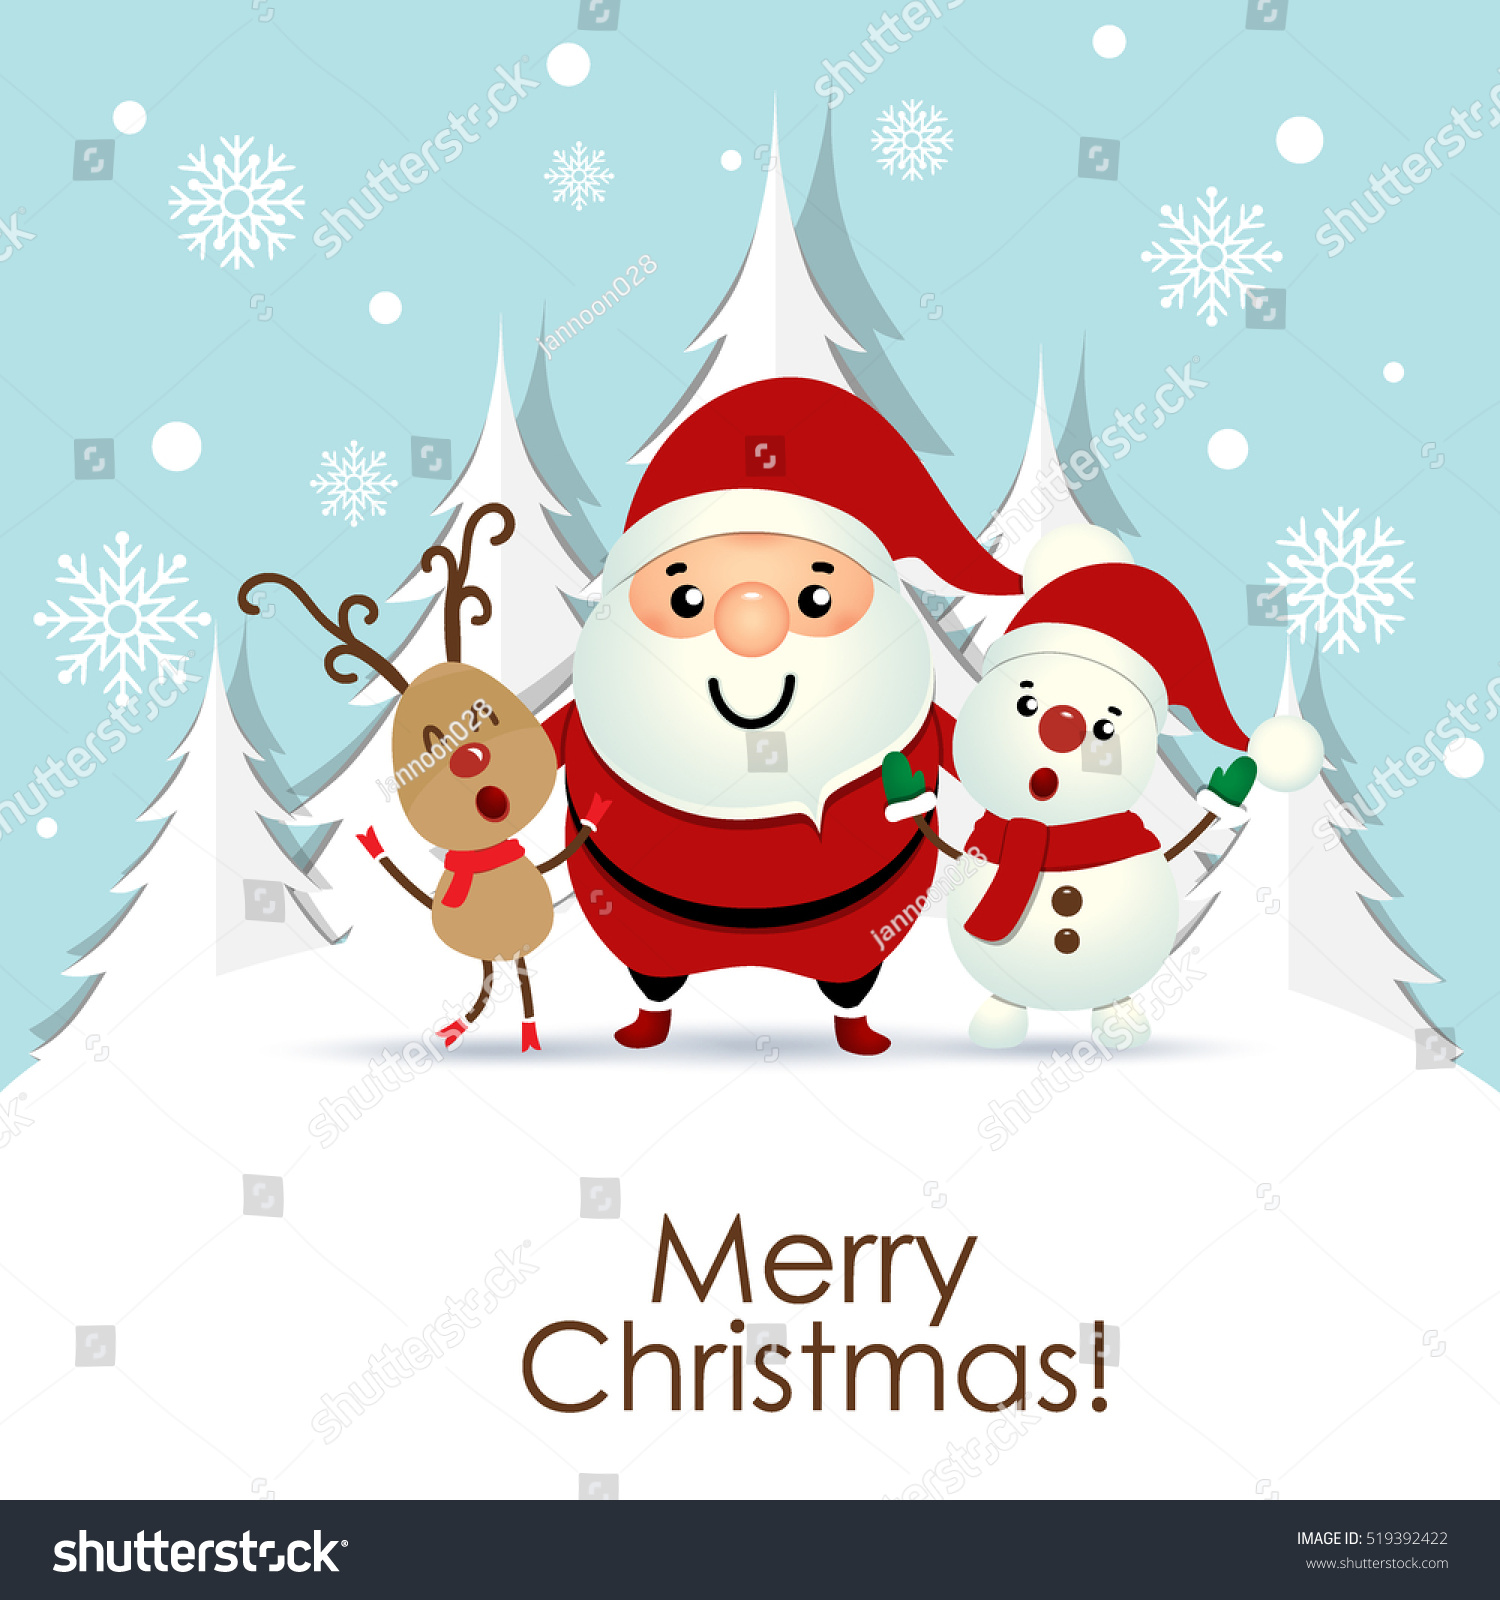 Christmas Images For Cards Free